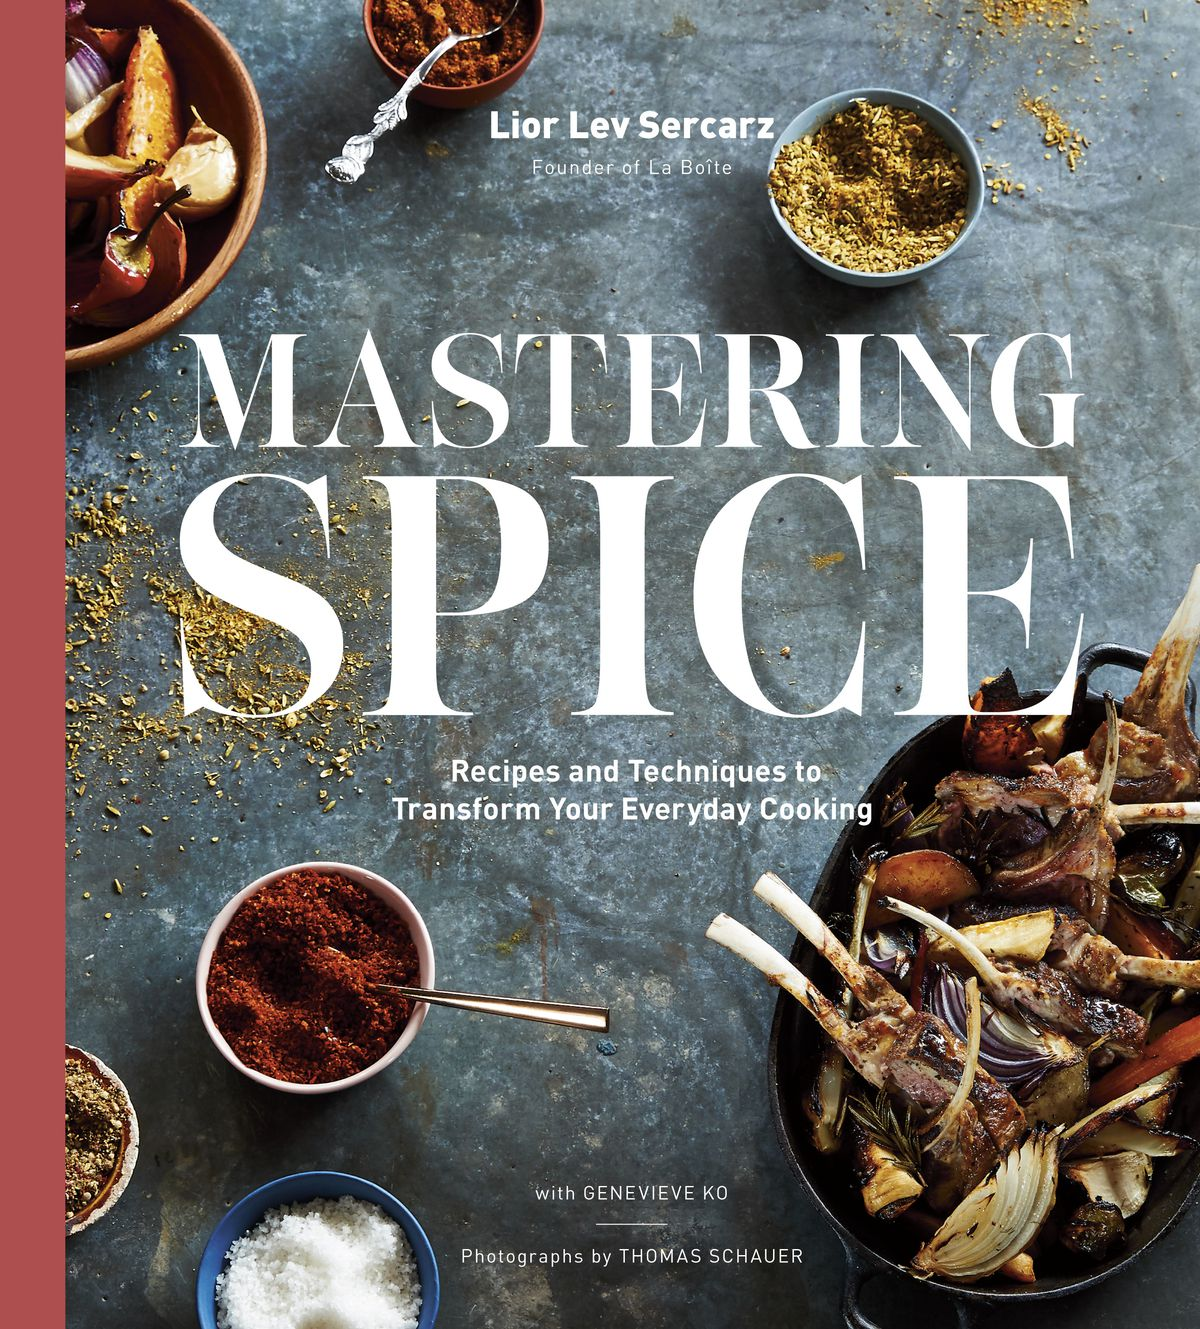 """Cover of """"Mastering Spice"""" cookbook, showing spiced powders and dried vegetables scattered on a dusty blue table"""